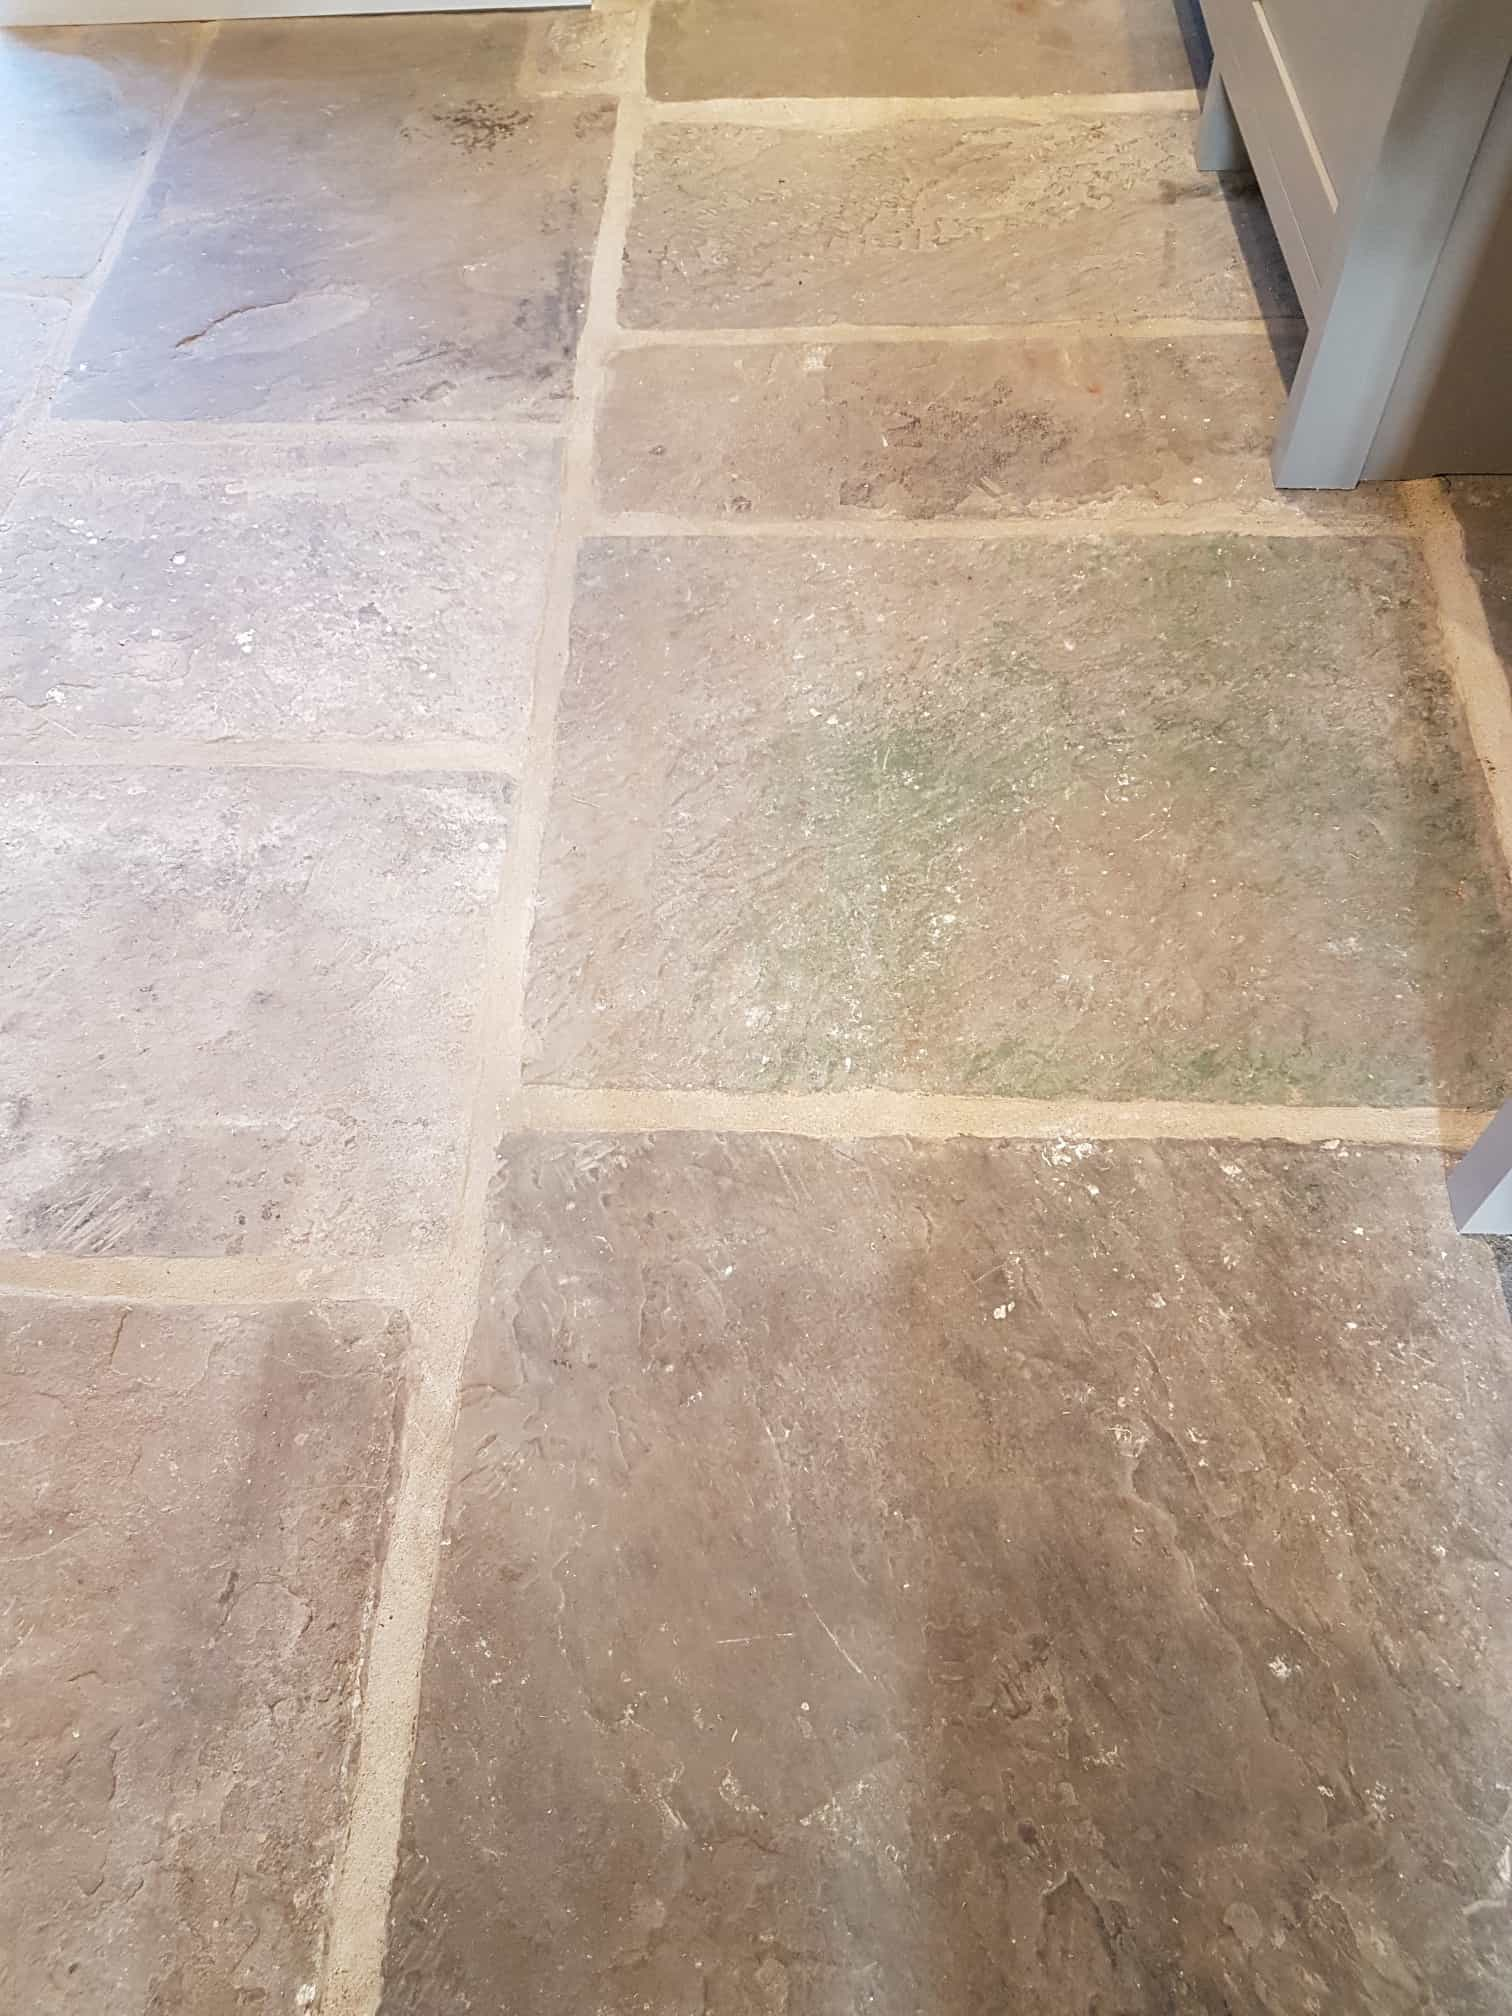 Yorkshire stone flagstone floor before renovation Harrogate